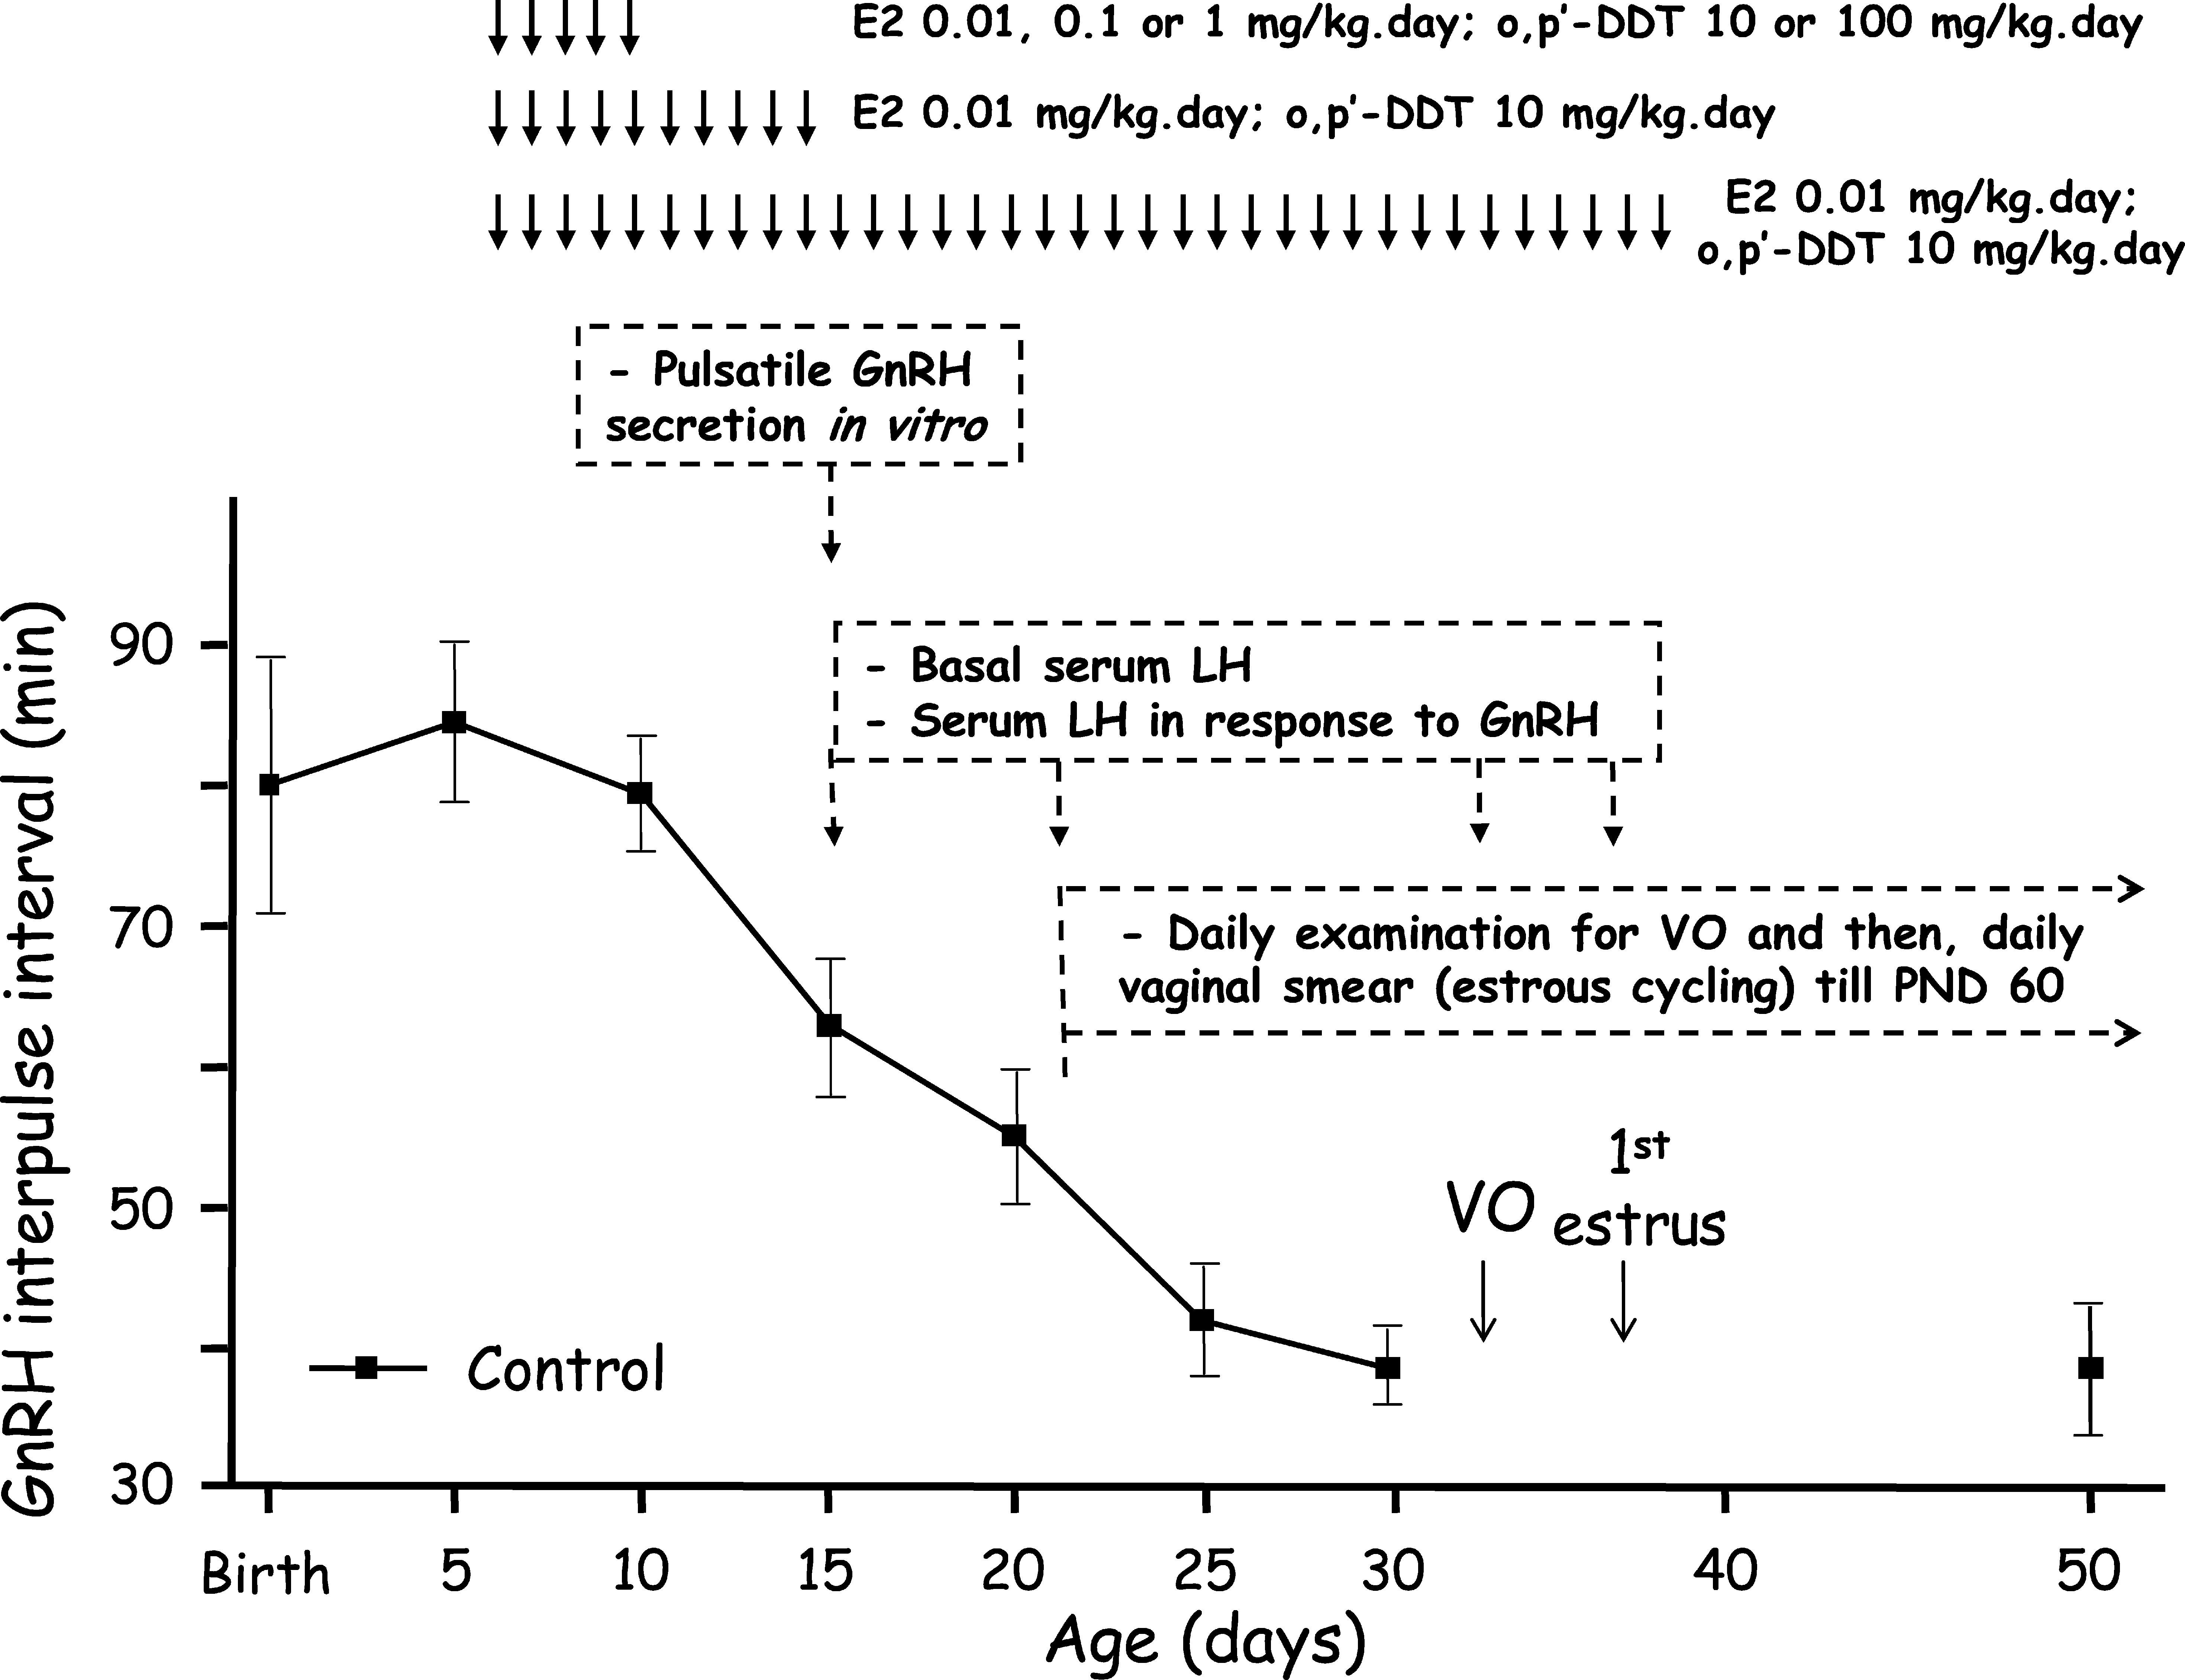 Early Maturation of Gonadotropin-Releasing Hormone Secretion